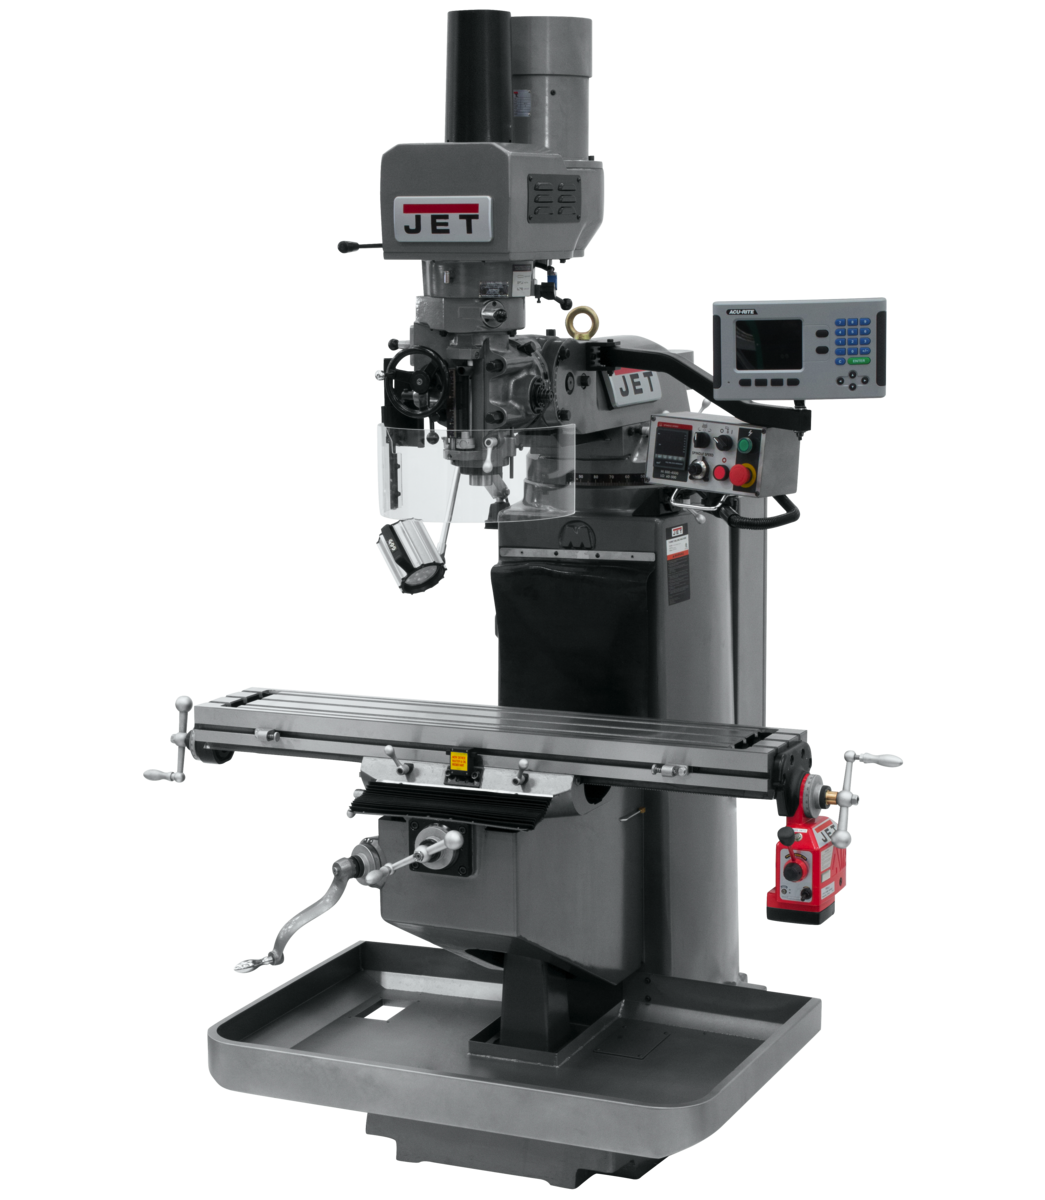 JTM-949EVS Mill With Acu-Rite 203 DRO With X-Axis Powerfeed and Air Powered Drawbar